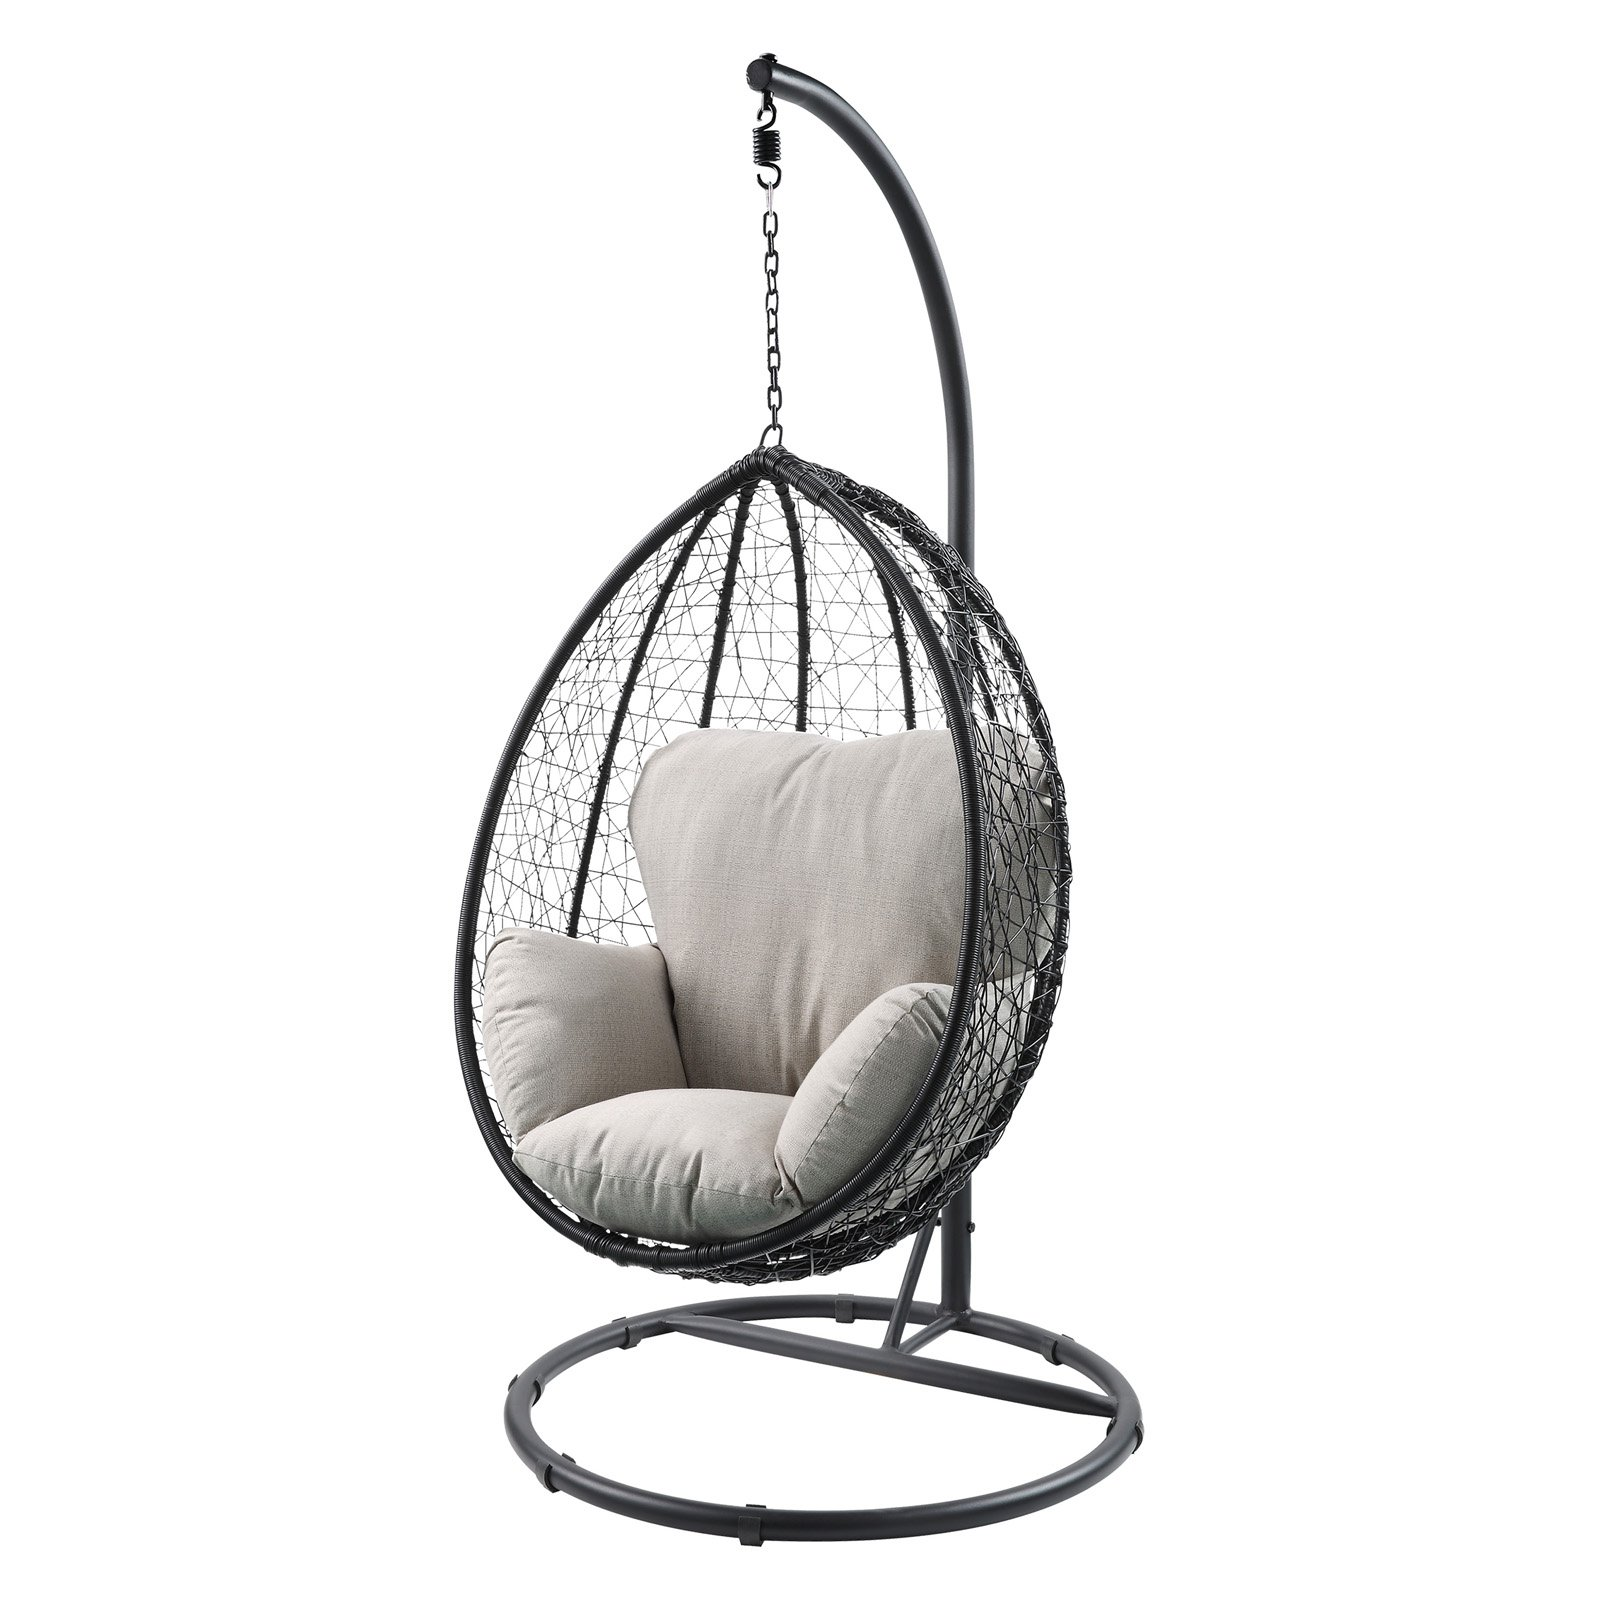 Hanging Egg Chair Outdoor Acme Furniture Simona Black Wicker Outdoor Hanging Egg Chair With Cushion